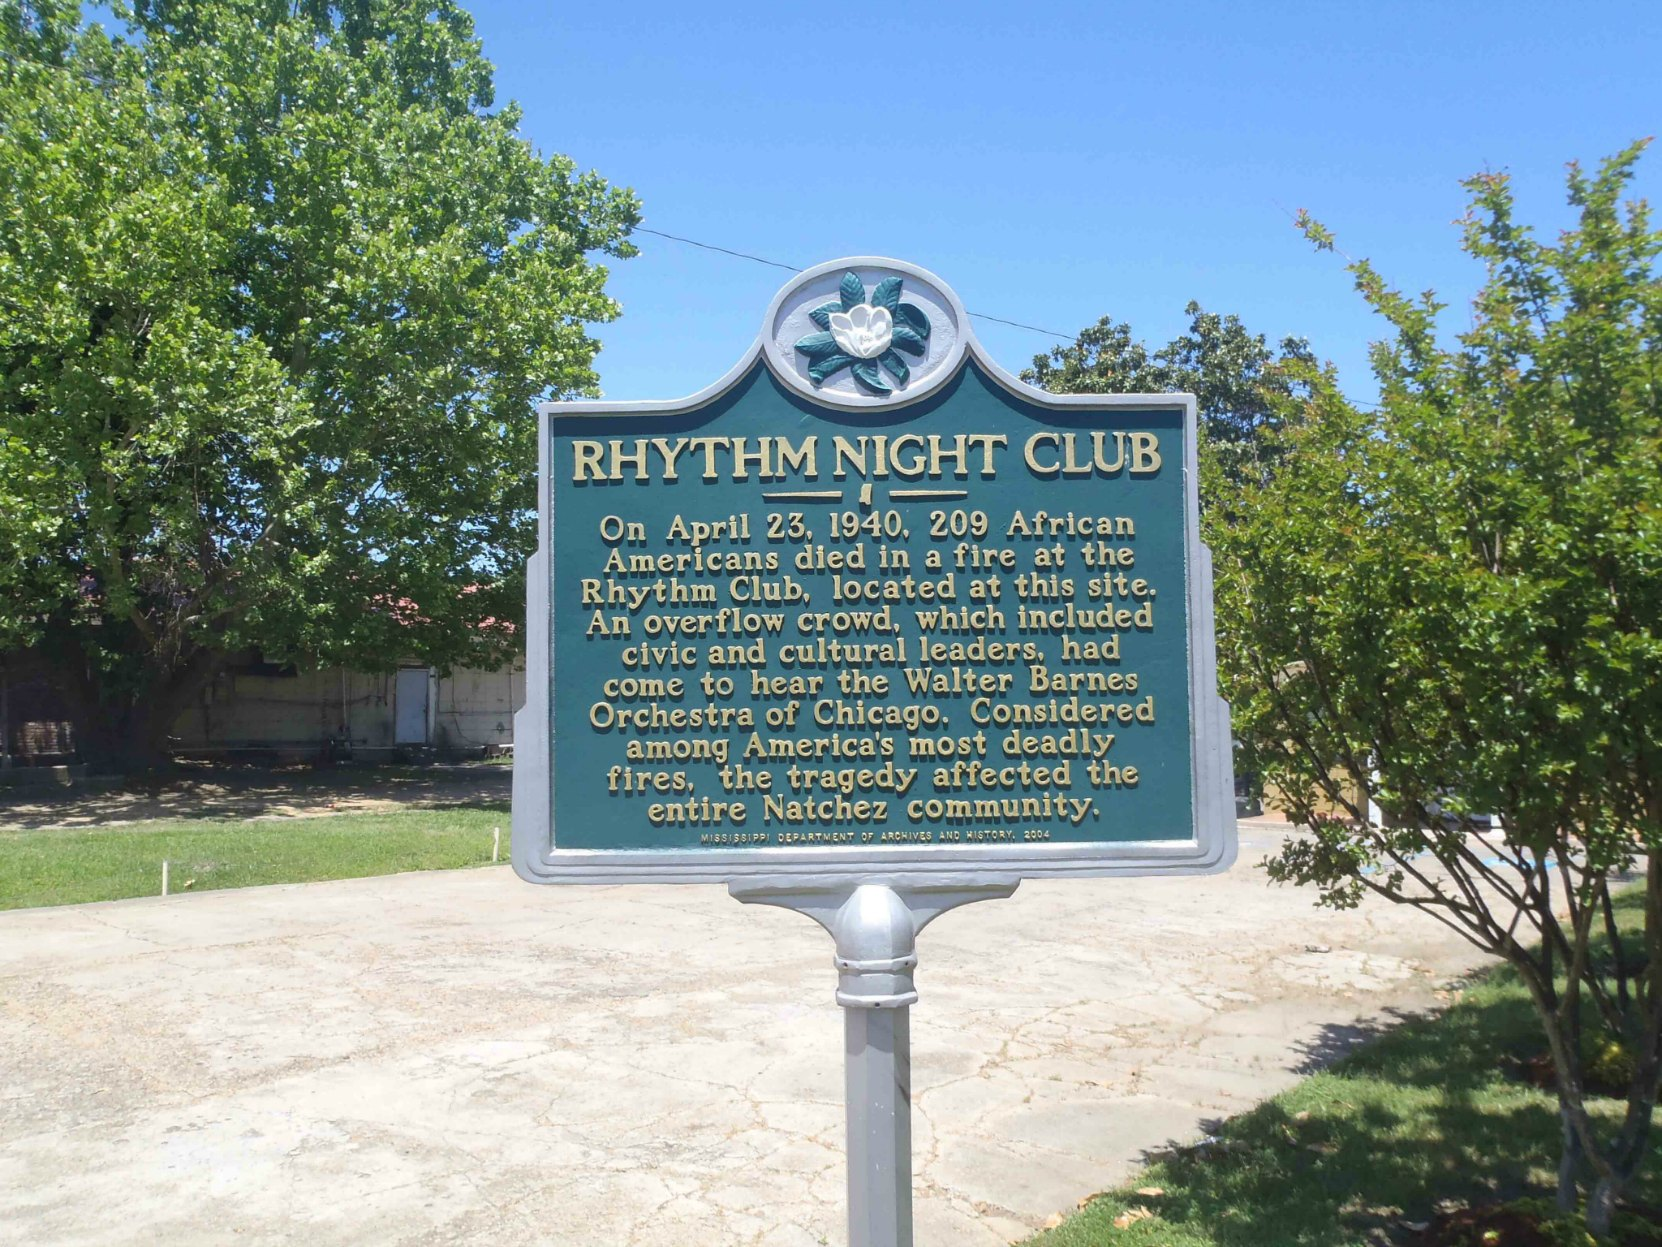 Mississippi Department of Archives & History marker for Rhythm Night Club Fire, Natchez, Mississippi